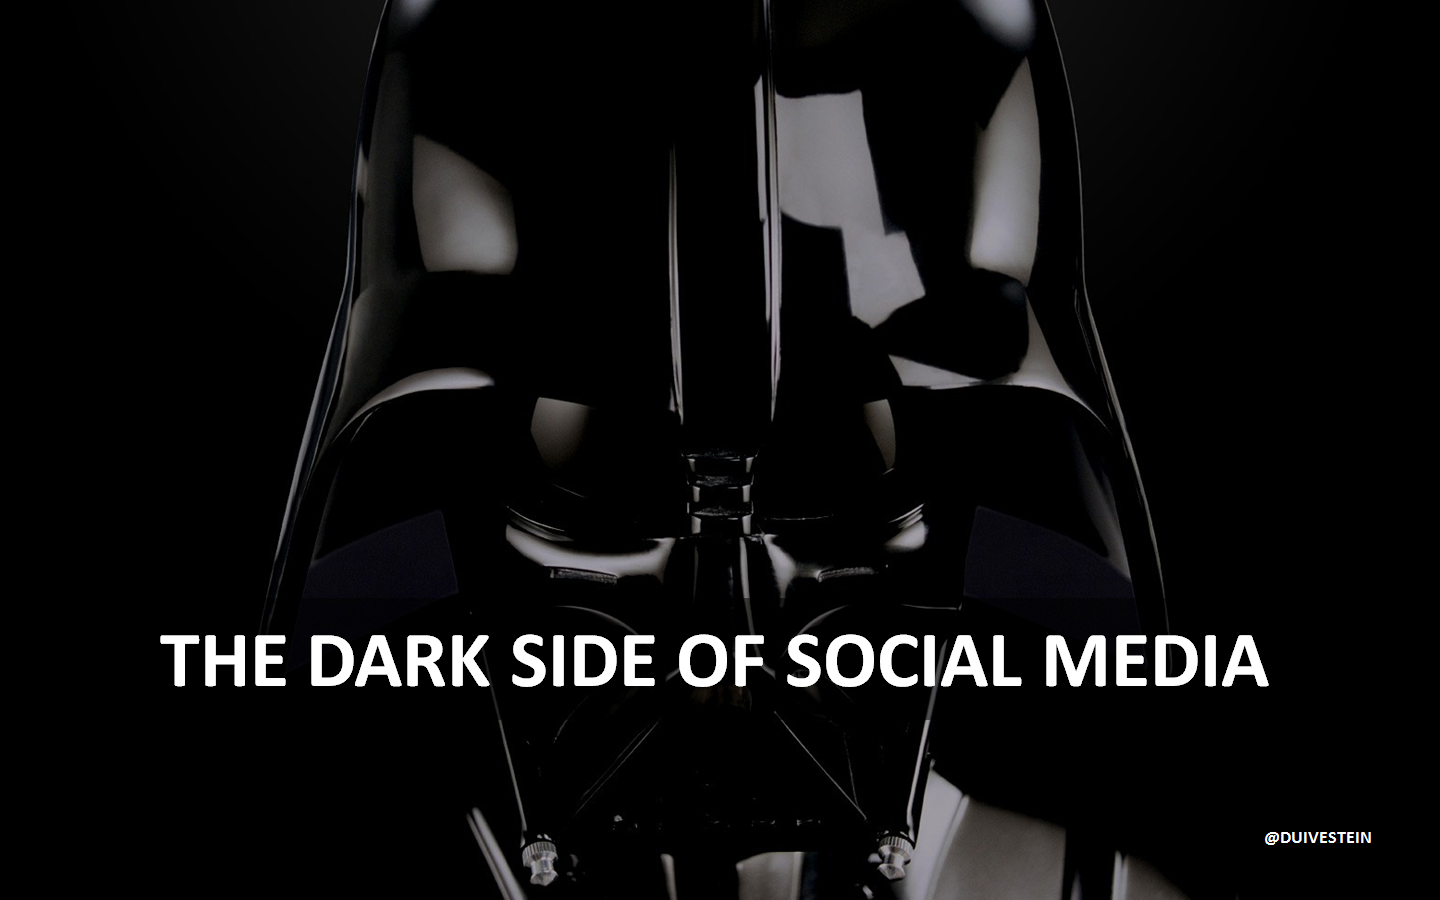 Does Google make us stupid? Can't we focus anymore because of all the disruptions that take away our attention? Some negative side effects of social media are described in the trendreport The Dark Side of Social Media. The report can be downloaded at this location: http://bit.ly/AoRnCo